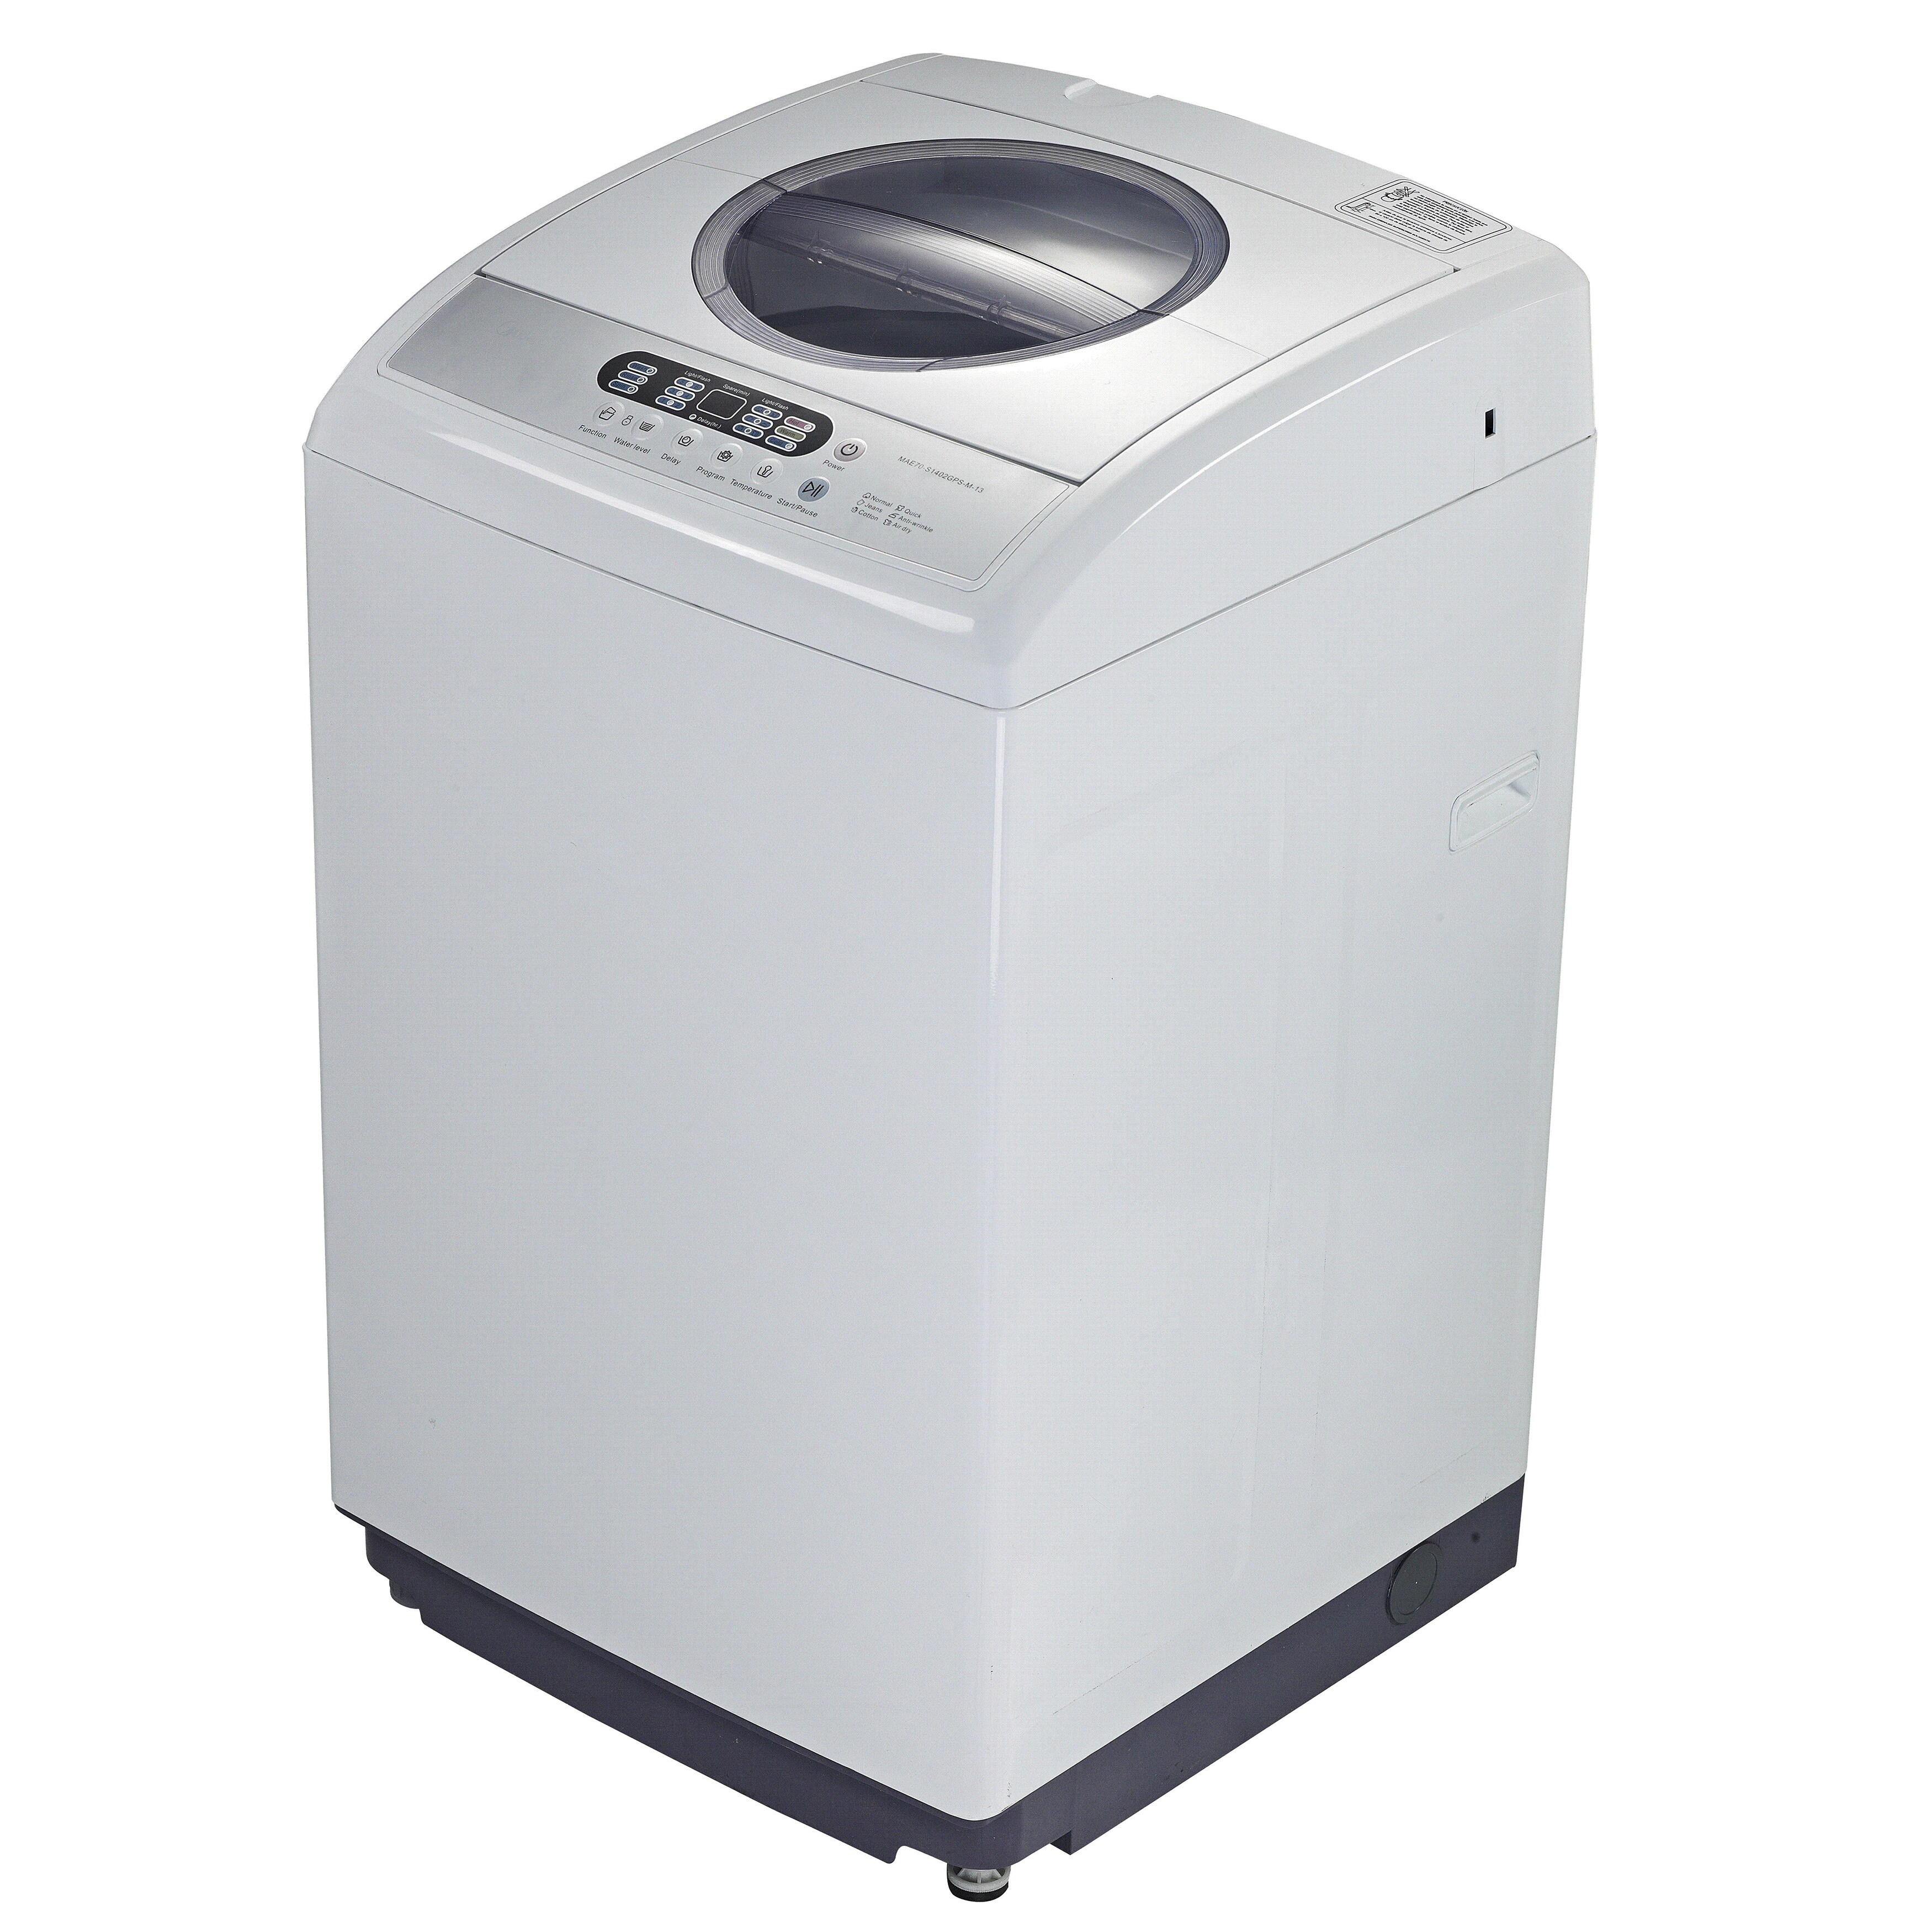 RCA 2.1 Cubic-Foot Portable Washing Machine, White (Stain...